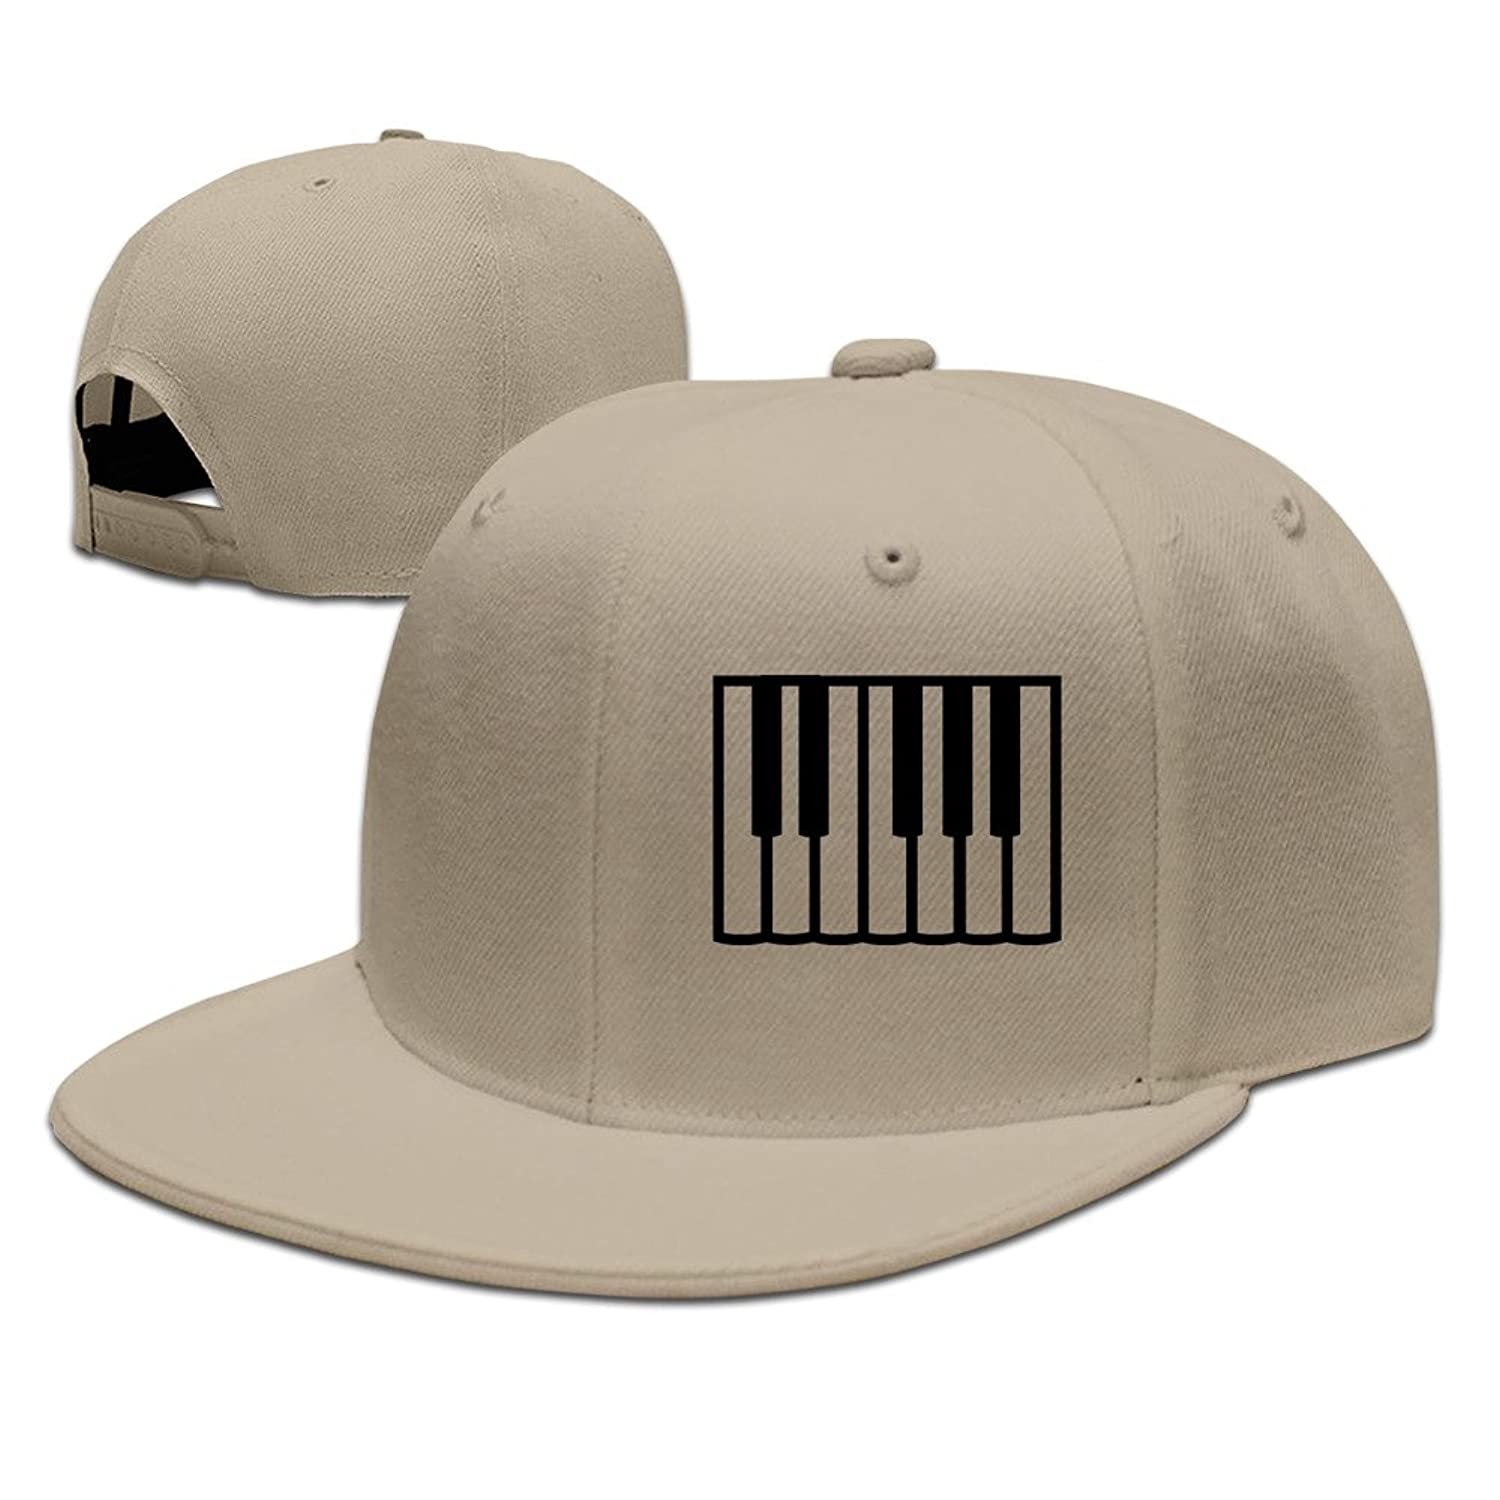 Custom Unisex Adjustable Fashion Piano Snapback Flat Caps One Size